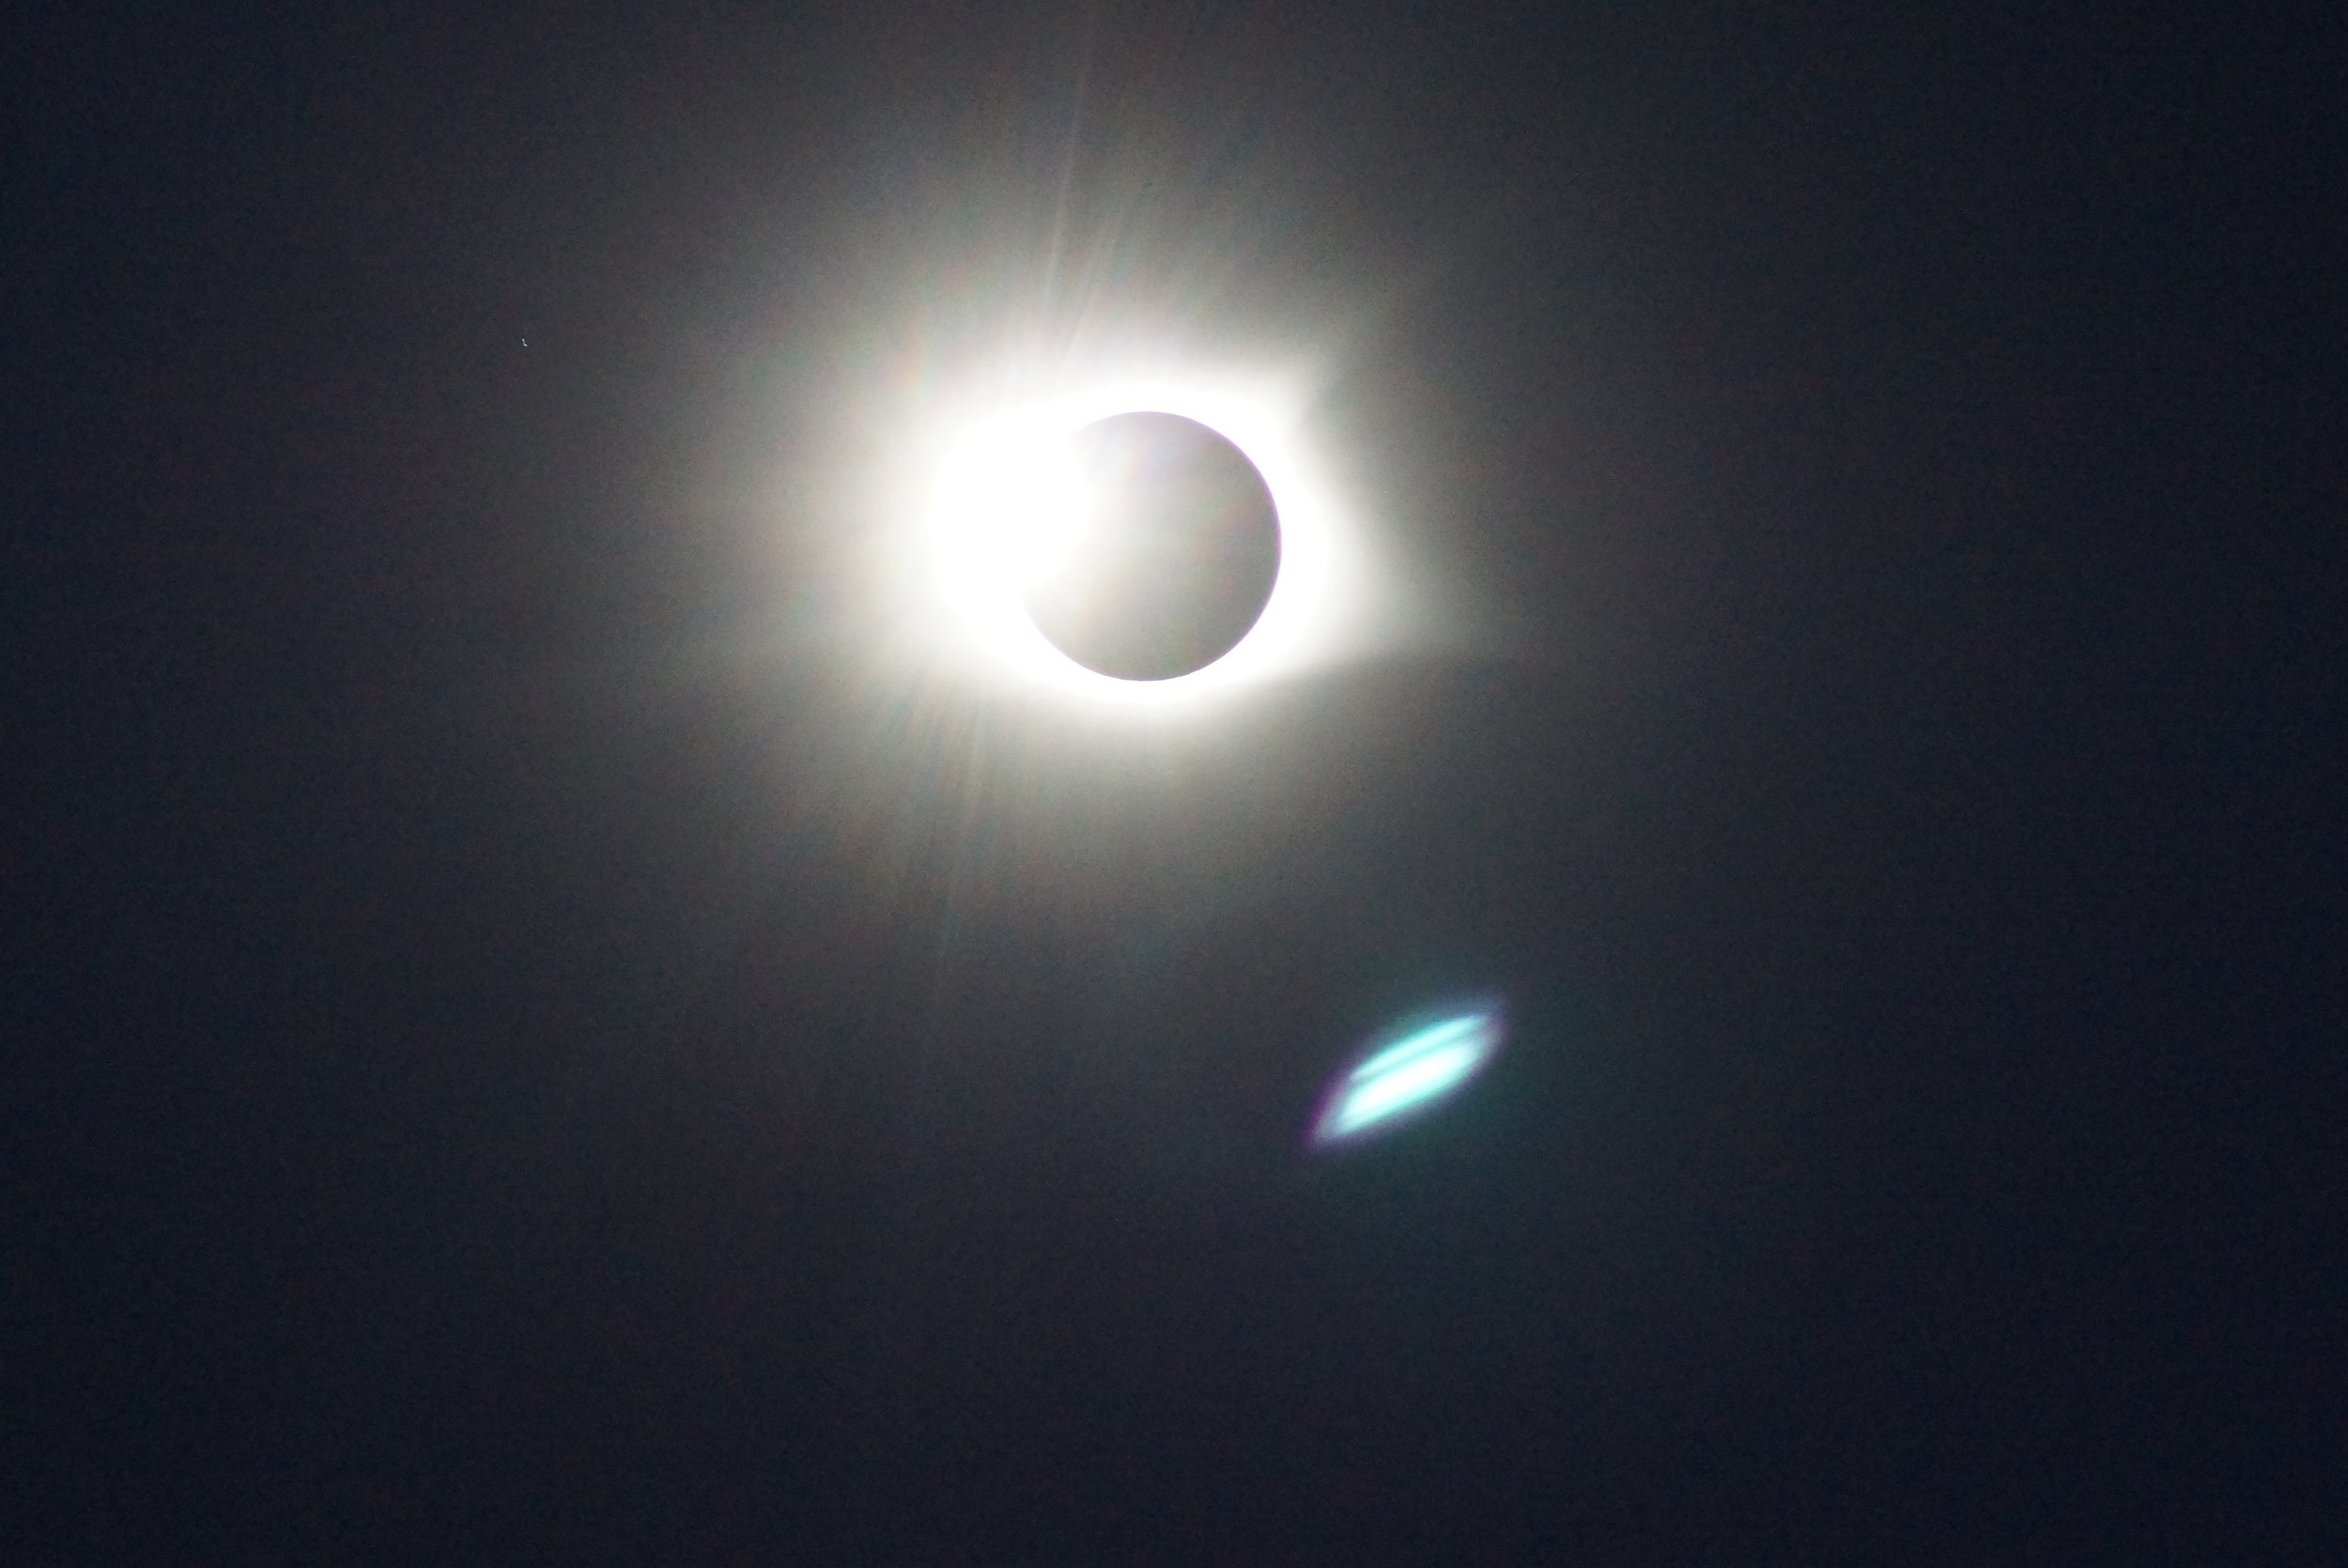 Moments before the total solar eclipse